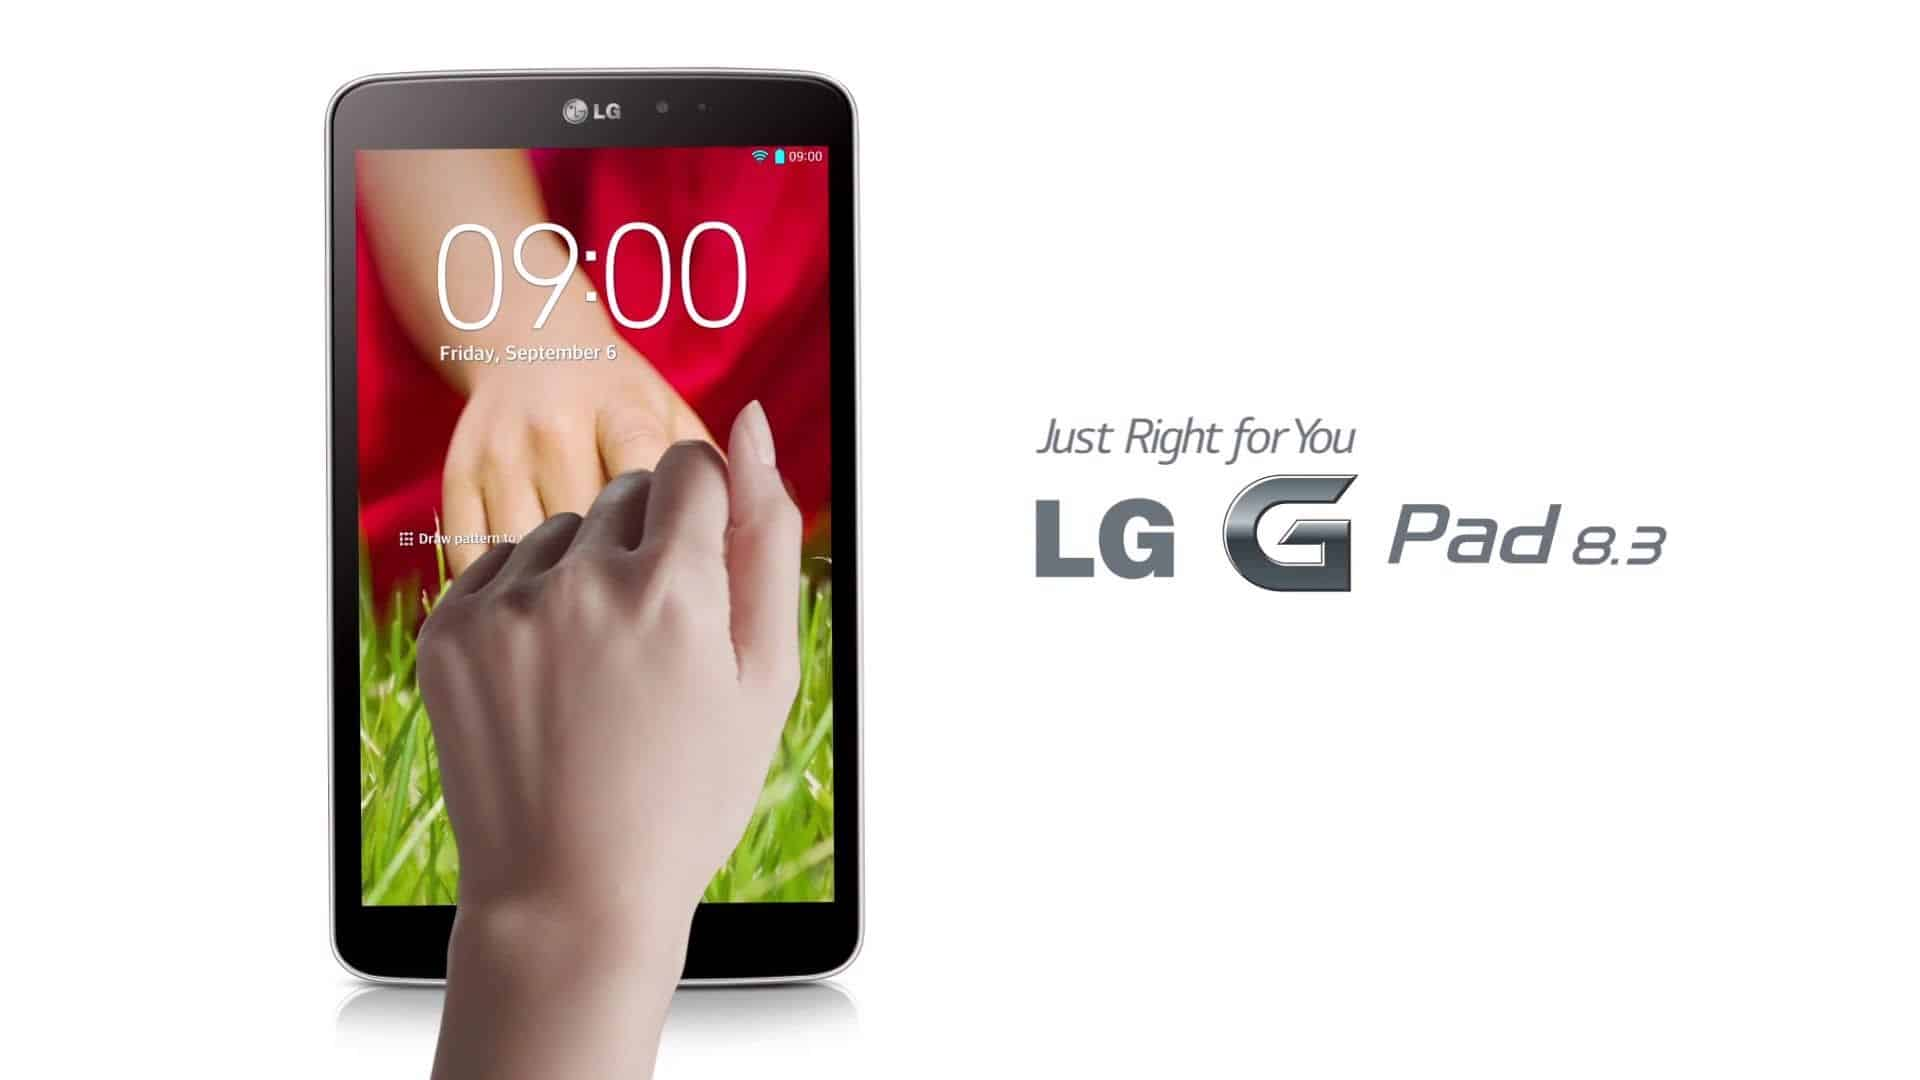 amazon LG G Pad 8.3 reviews LG G Pad 8.3 on amazon newest LG G Pad 8.3 prices of LG G Pad 8.3 LG G Pad 8.3 deals best deals on LG G Pad 8.3 buying a LG G Pad 8.3 lastest LG G Pad 8.3 what is a LG G Pad 8.3 LG G Pad 8.3 at amazon where to buy LG G Pad 8.3 where can i you get a LG G Pad 8.3 online purchase LG G Pad 8.3 LG G Pad 8.3 sale off LG G Pad 8.3 discount cheapest LG G Pad 8.3 LG G Pad 8.3 for sale